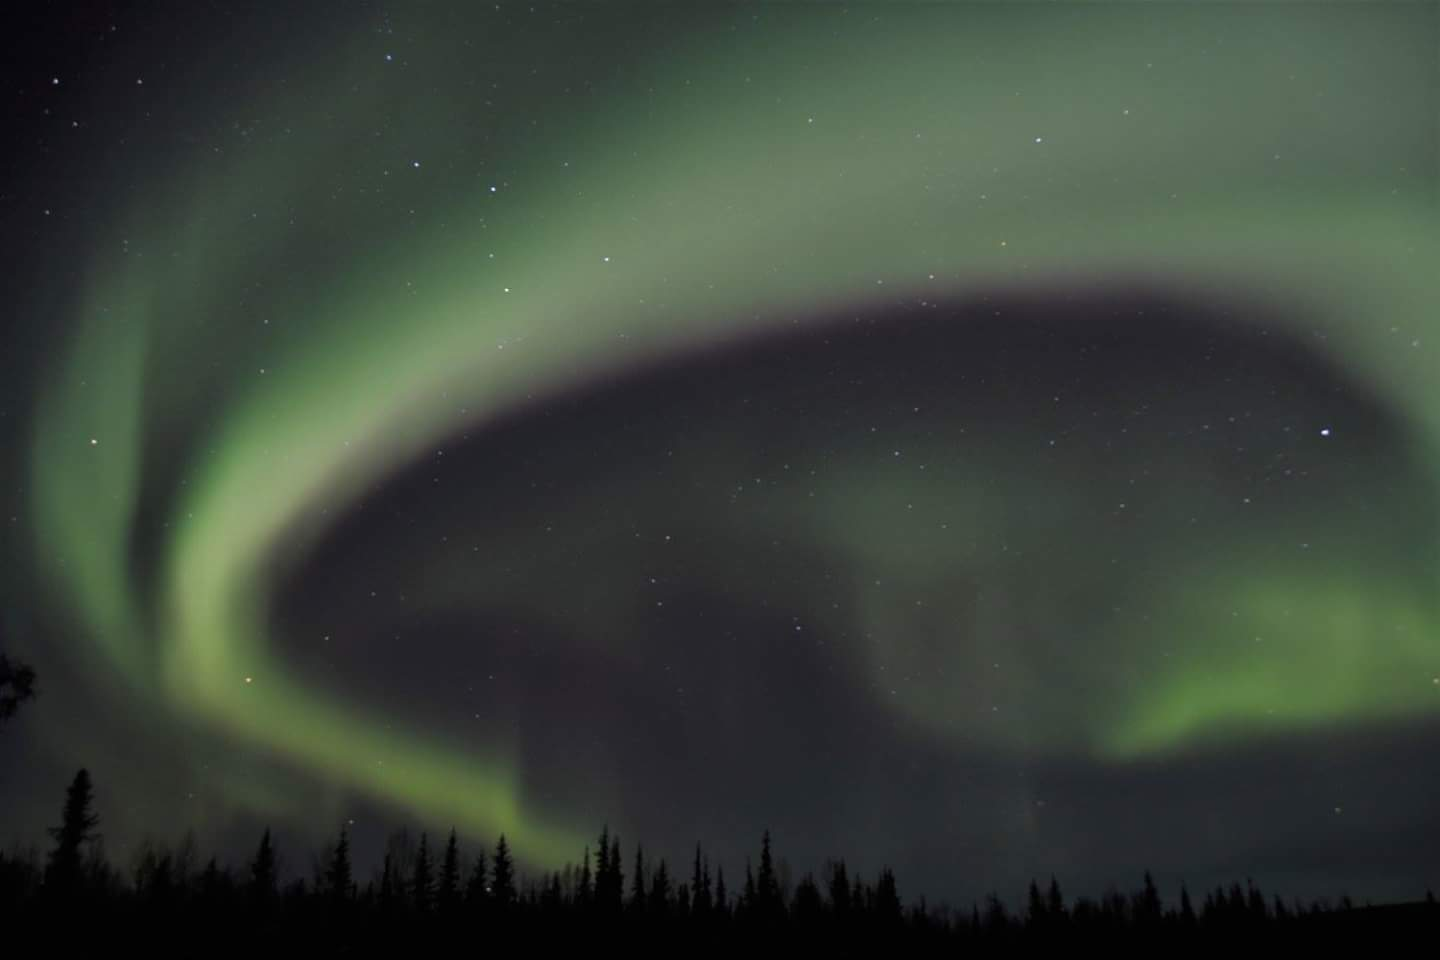 Alaska's March Night Skies - Courtesy of Joe Altman